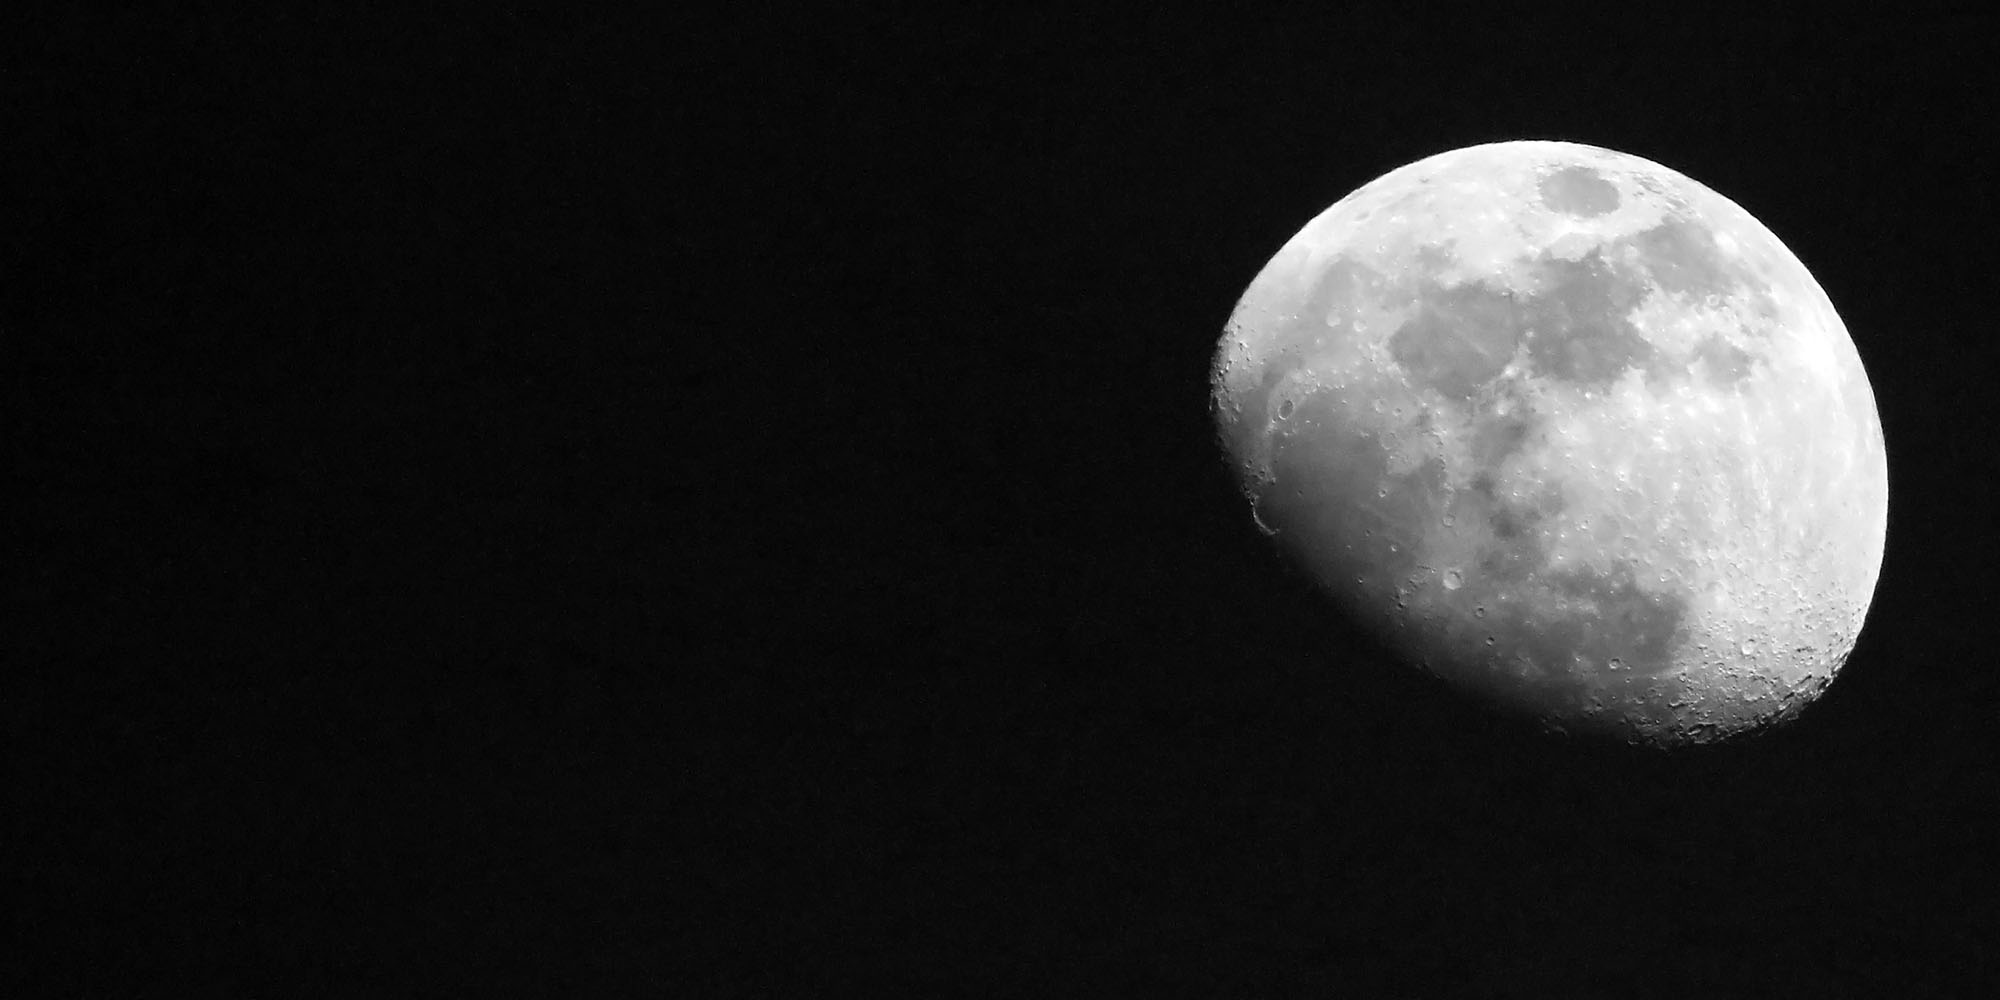 Largest supermoon of 2020 rises on a world battling COVID-19 - Daily Maverick